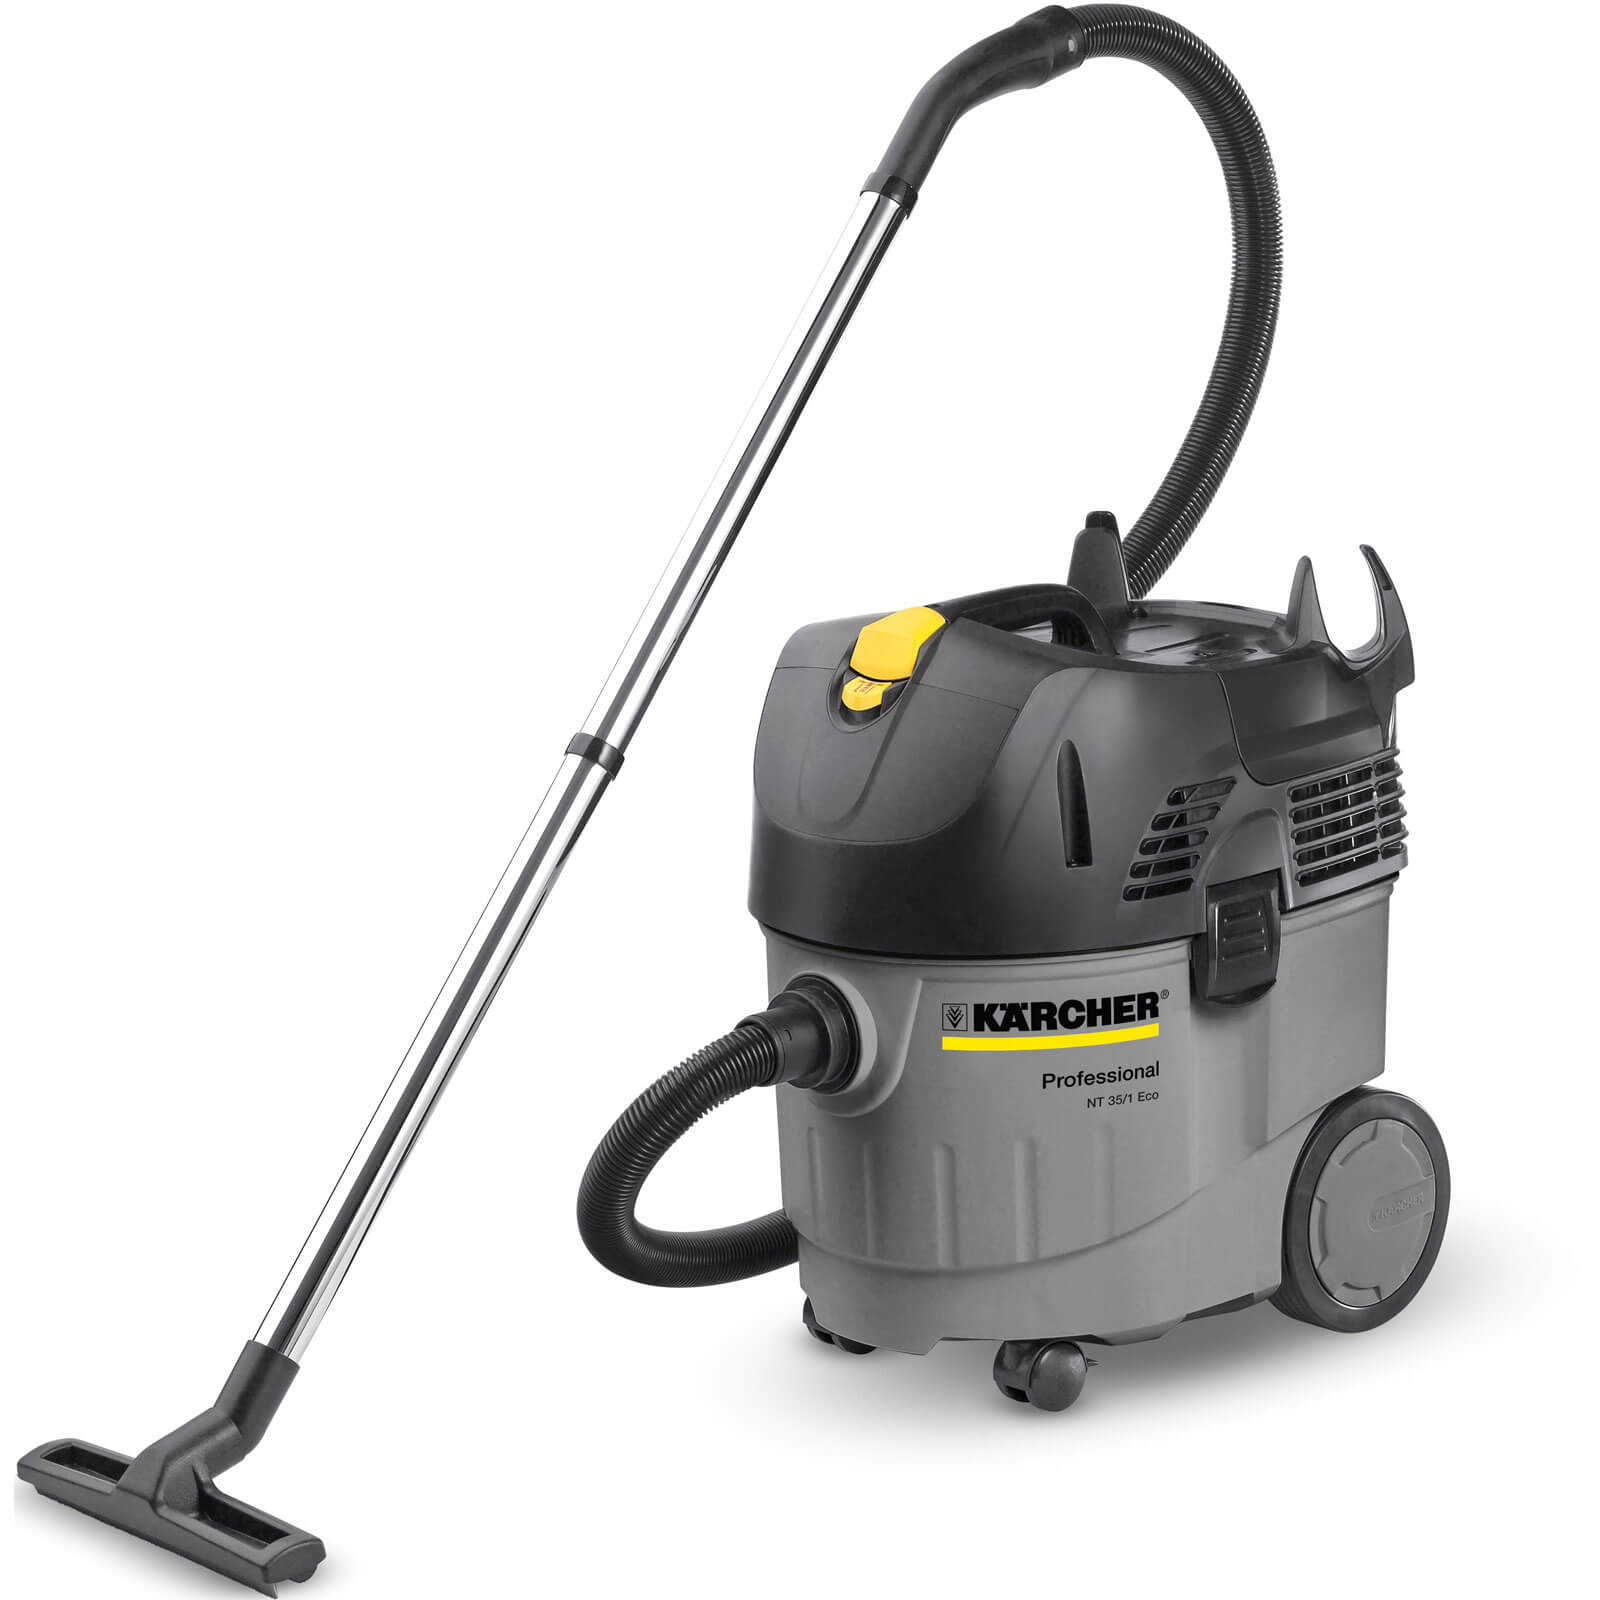 Karcher NT 351 TACT Professional Wet & Dry Vacuum Cleaner 240v